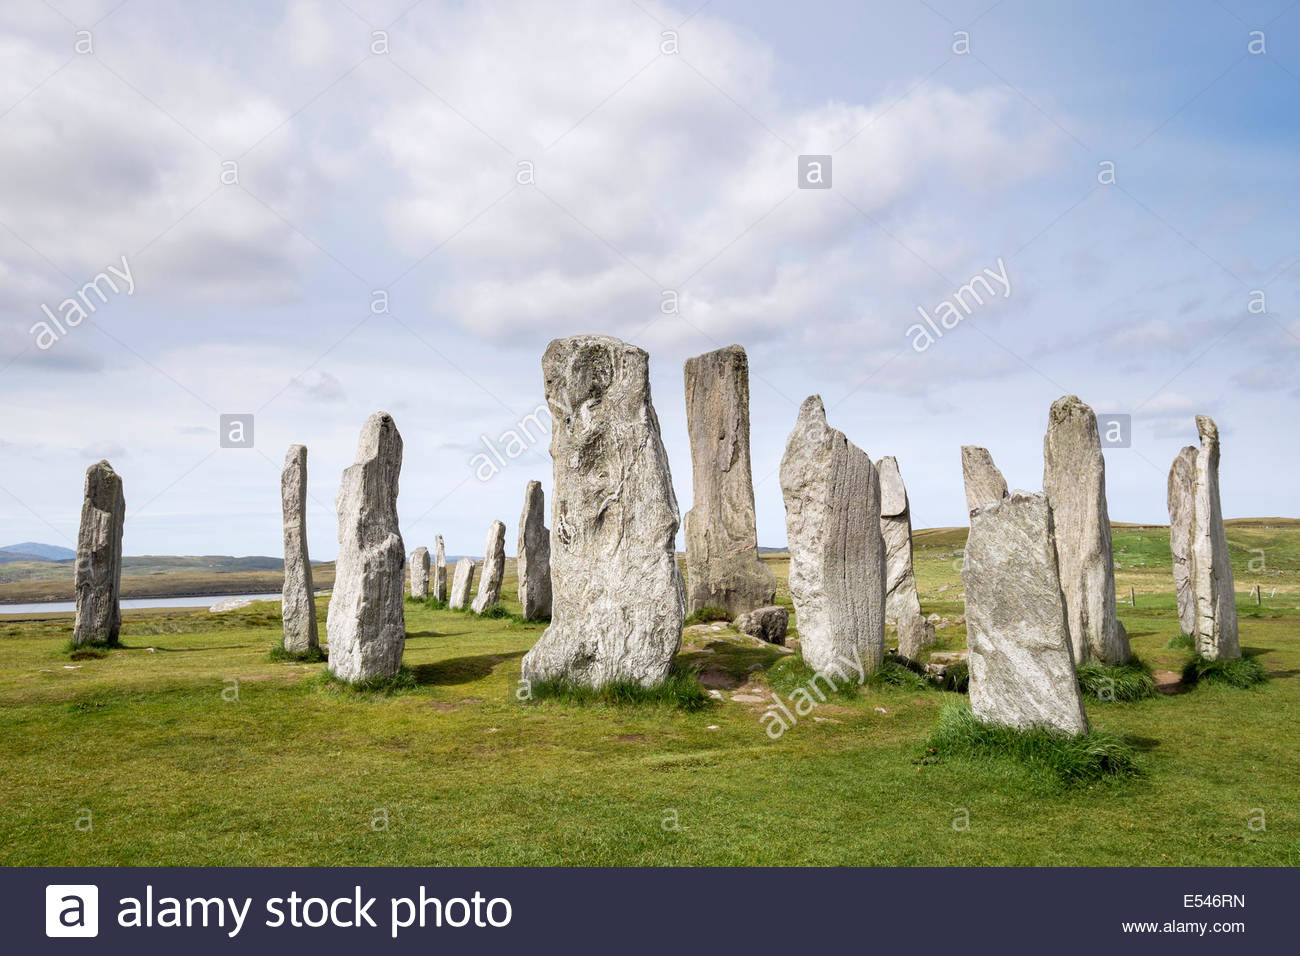 Calanais Standing Stones The Northern Highlands and the Western Isles, Standing Stone Scotland Stock Photos & Standing Stone Scotland ...